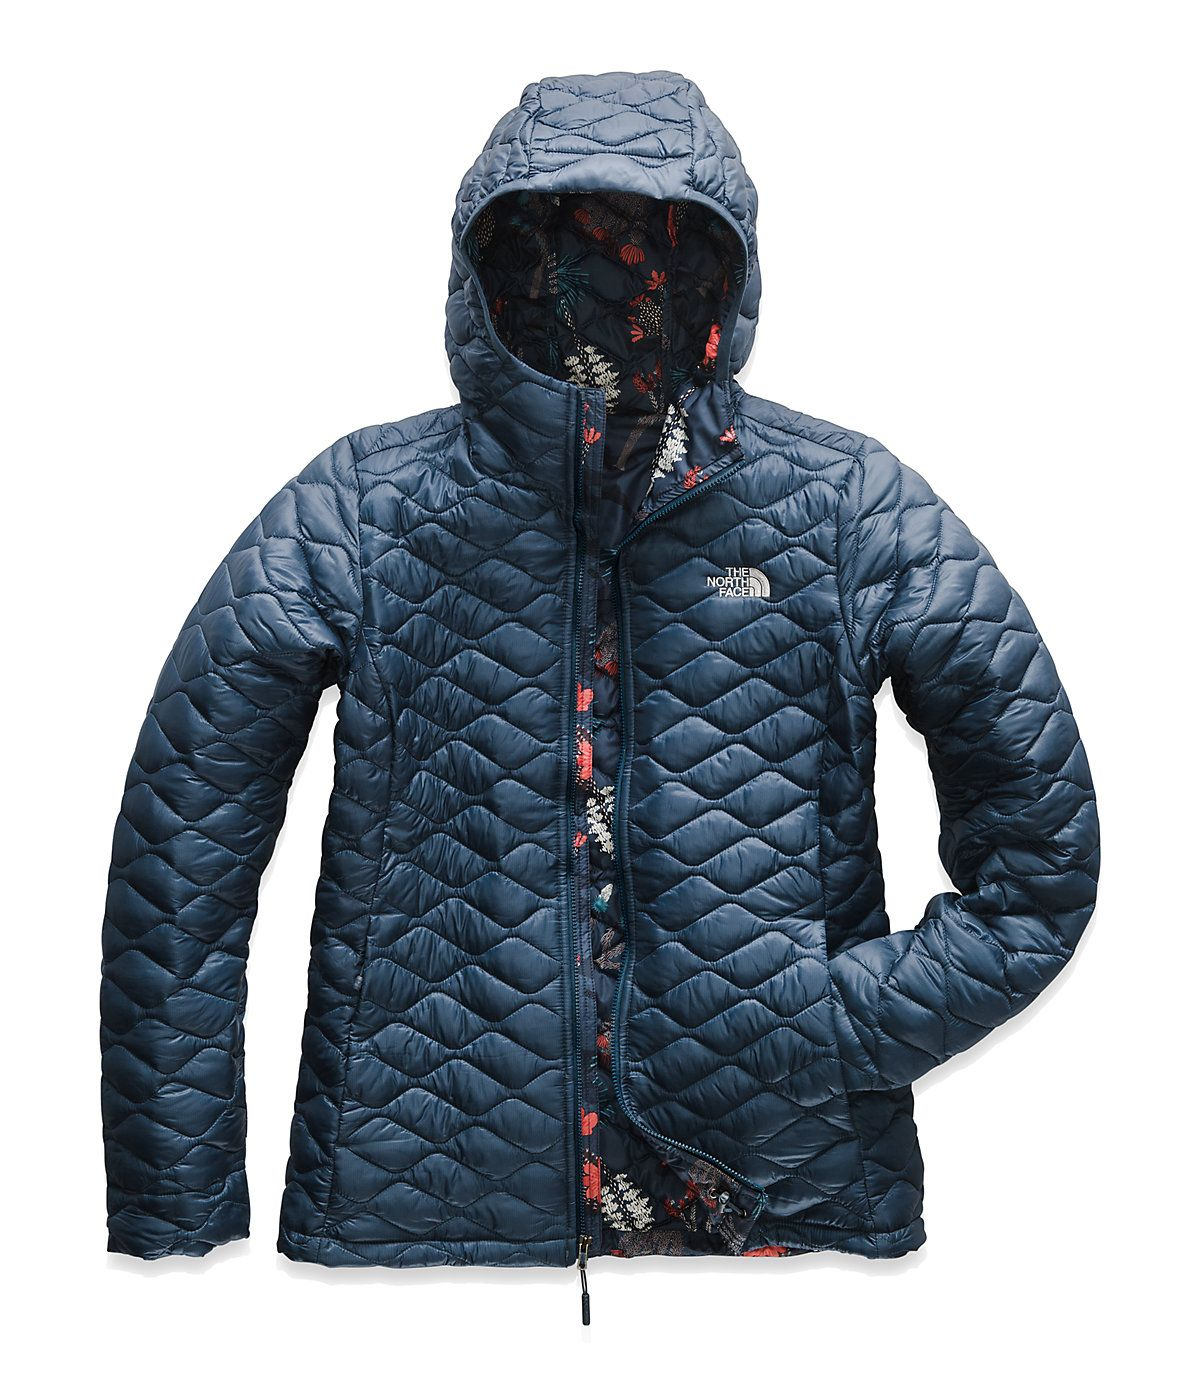 358e5130b The North Face Women's Thermoball Hoodie in 2019   Products ...